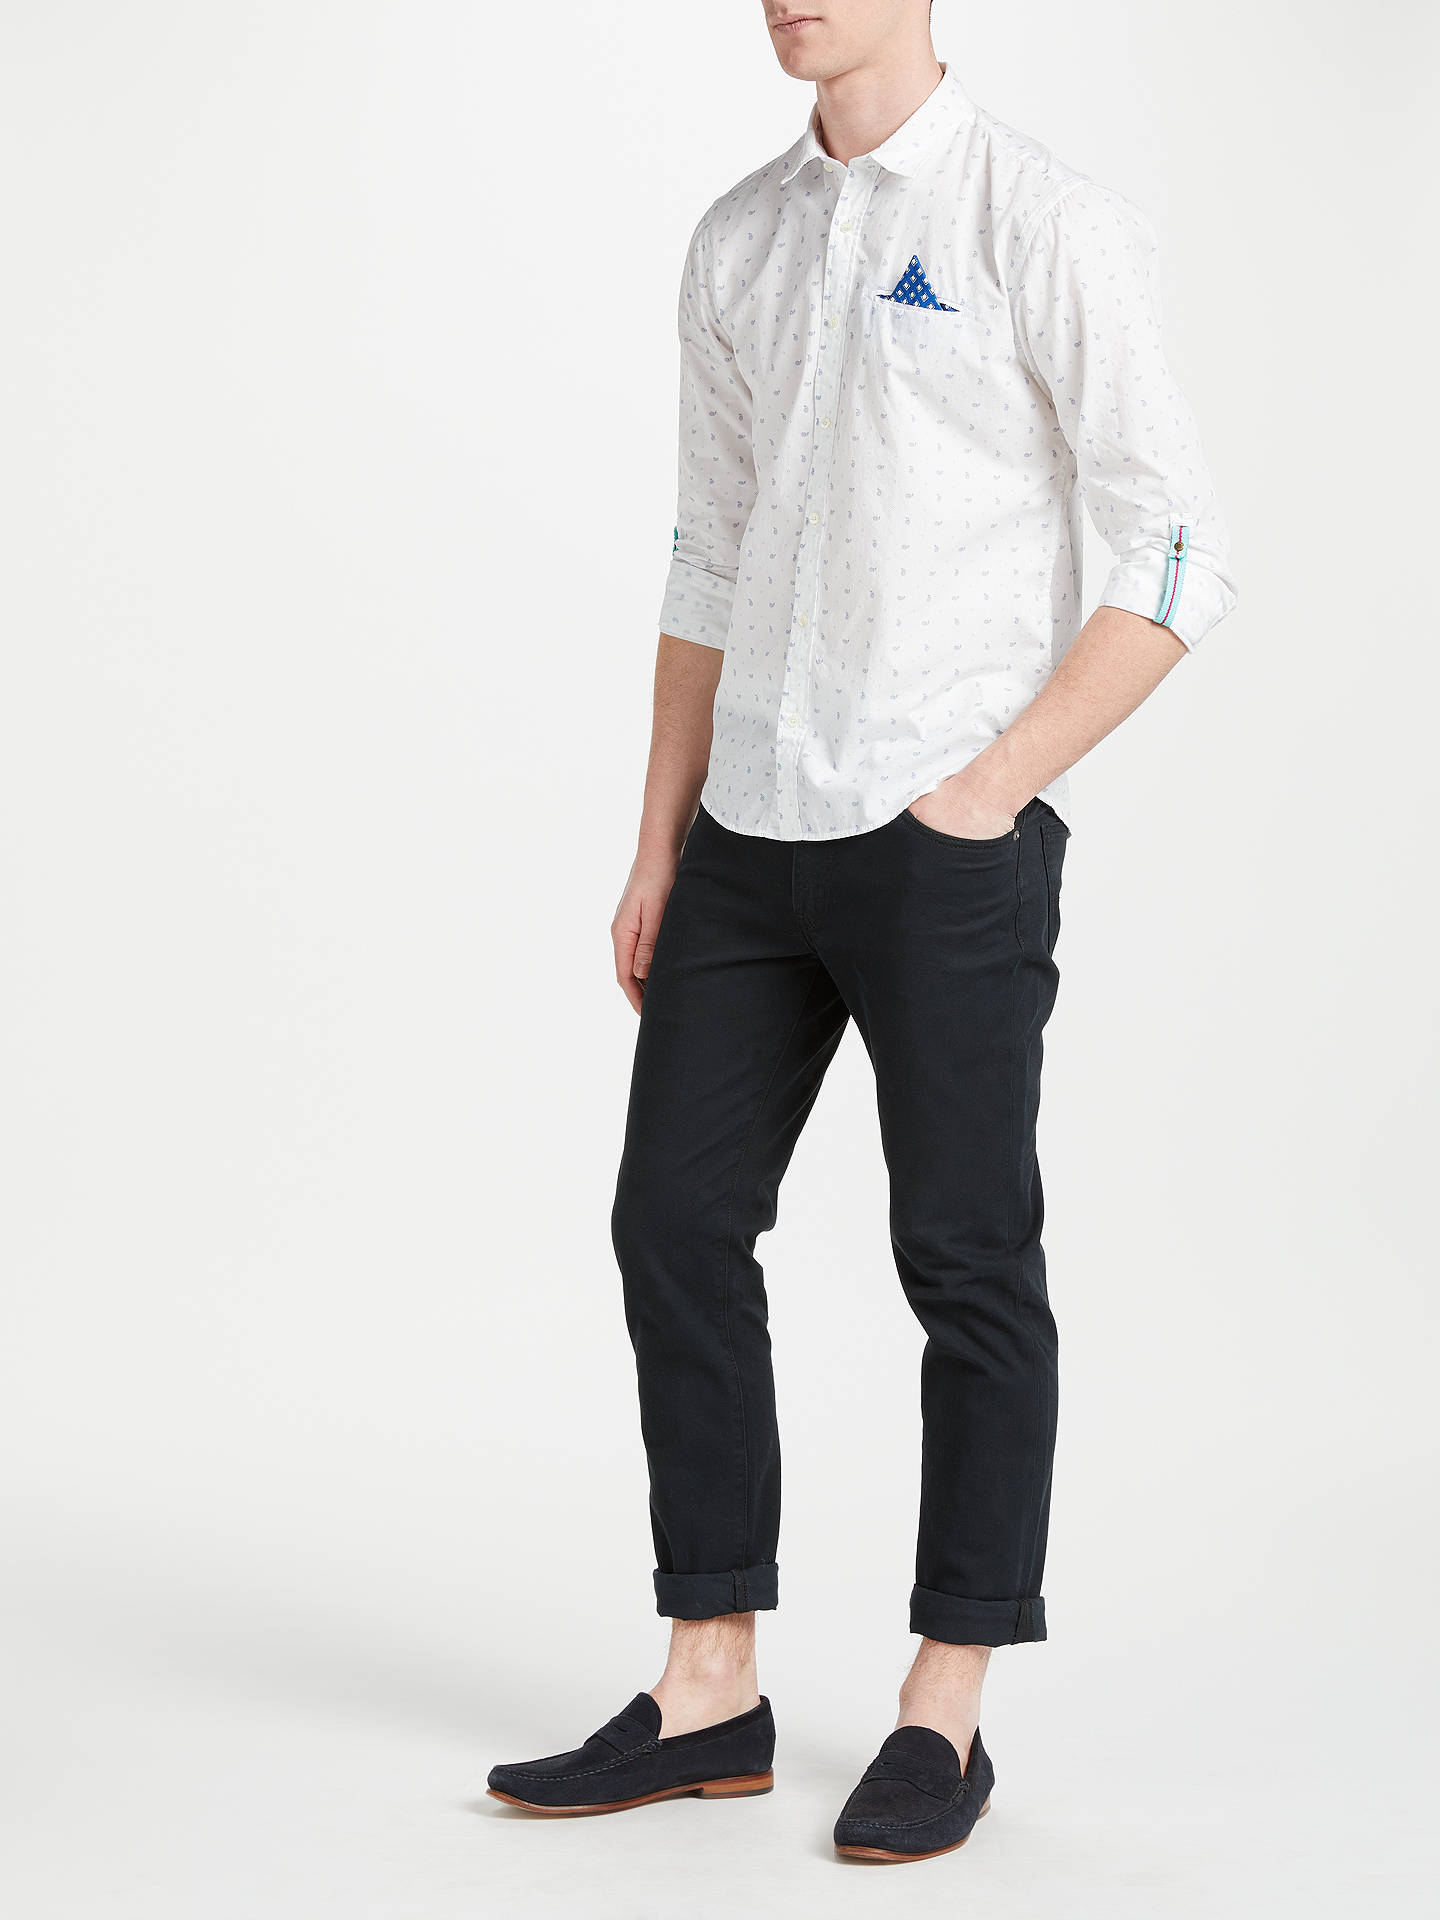 BuyScotch & Soda Fixed Pocket Tab Sleeve Pattern Shirt, White/Multi, S Online at johnlewis.com